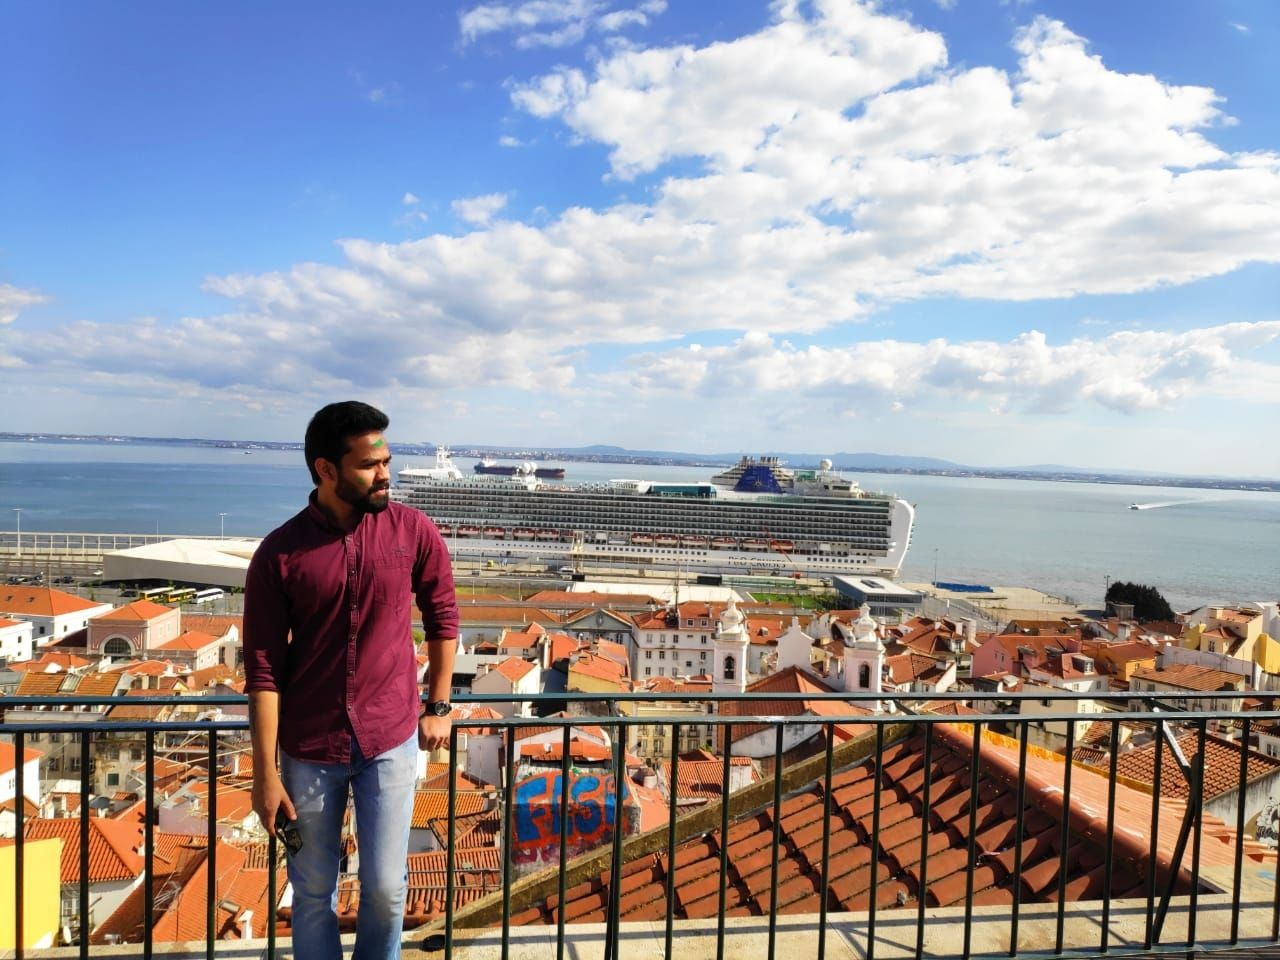 Photo of Lisbon By devanshu gupta